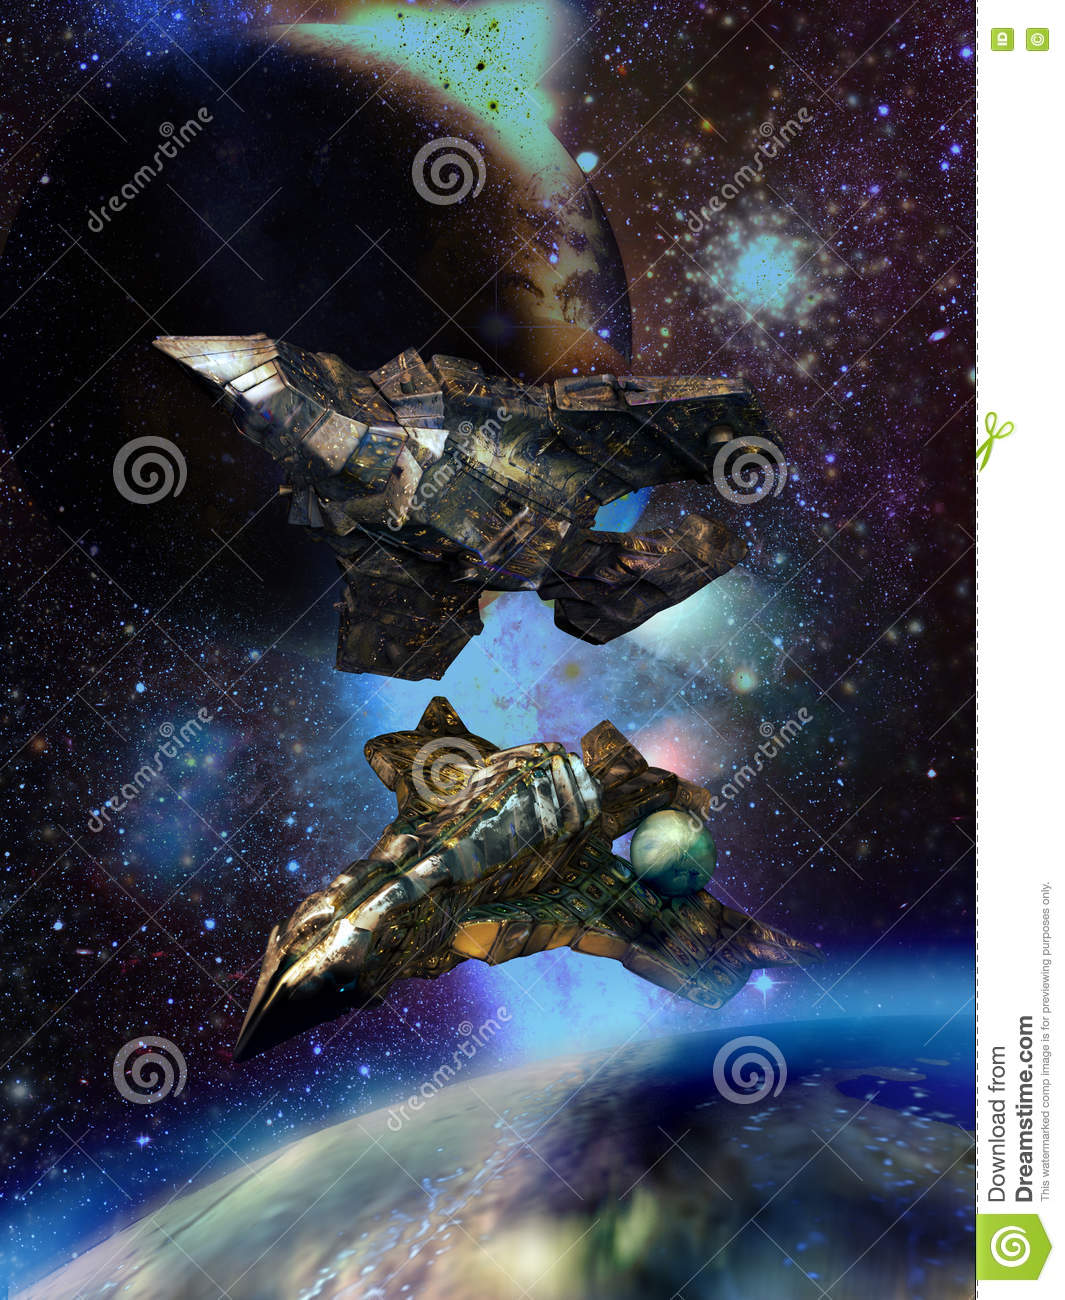 Huge spaceships close to alien planets